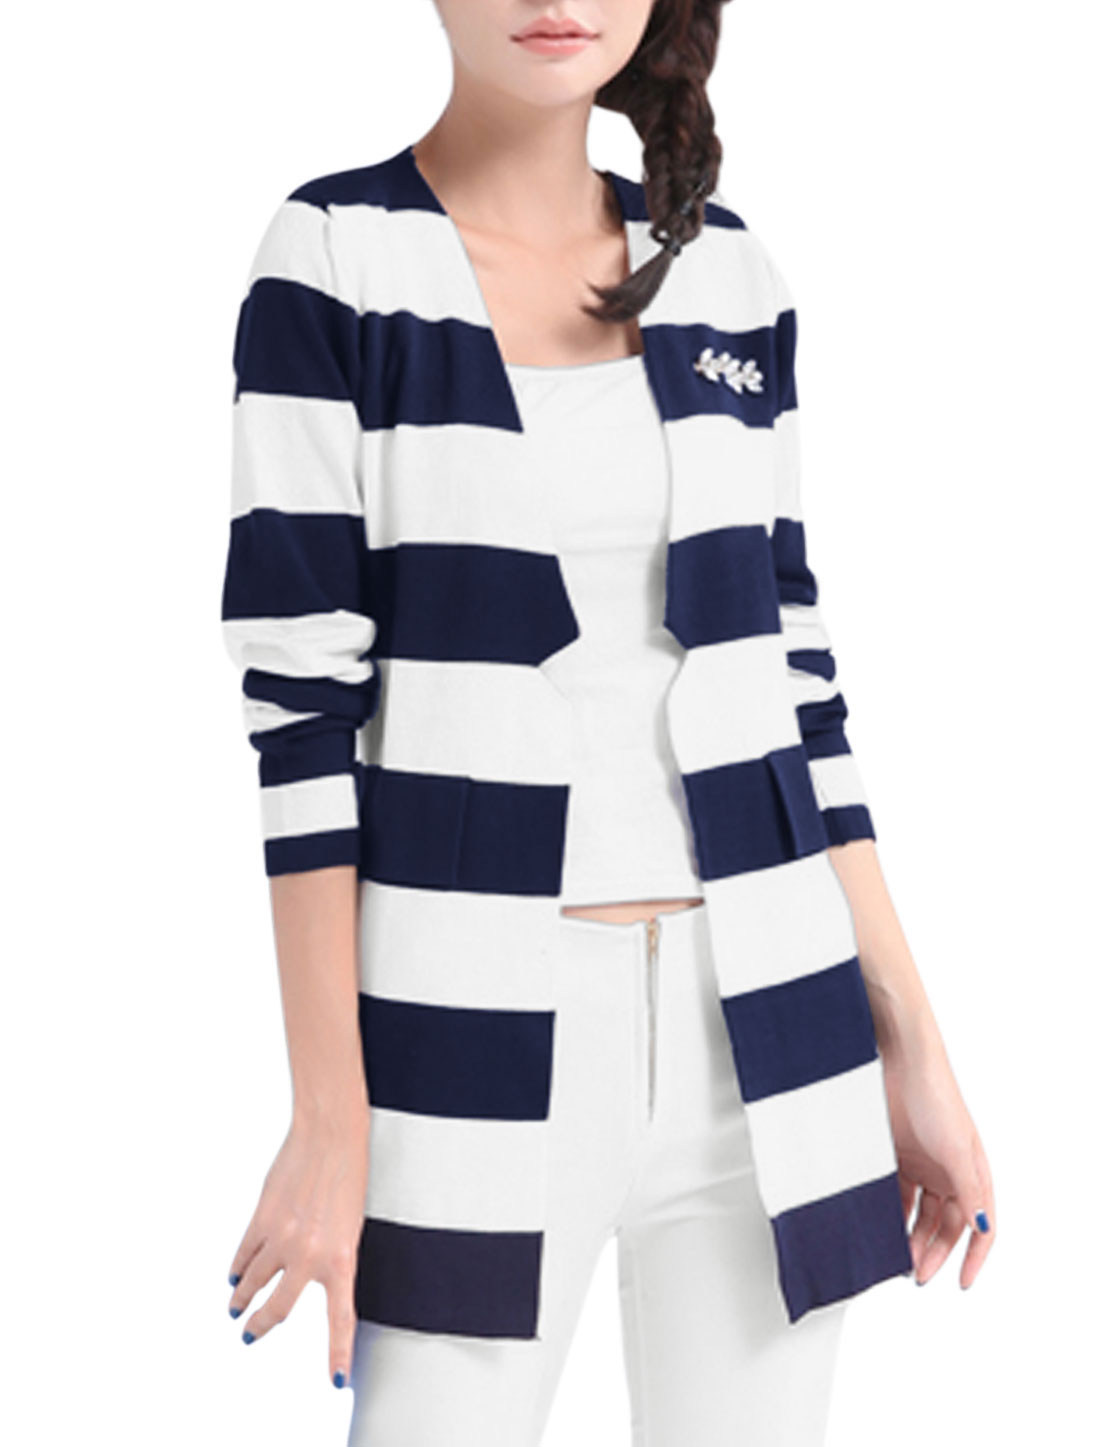 Lady Padded Shoulder Open Front Stripes Long Cardigan Navy Blue White M